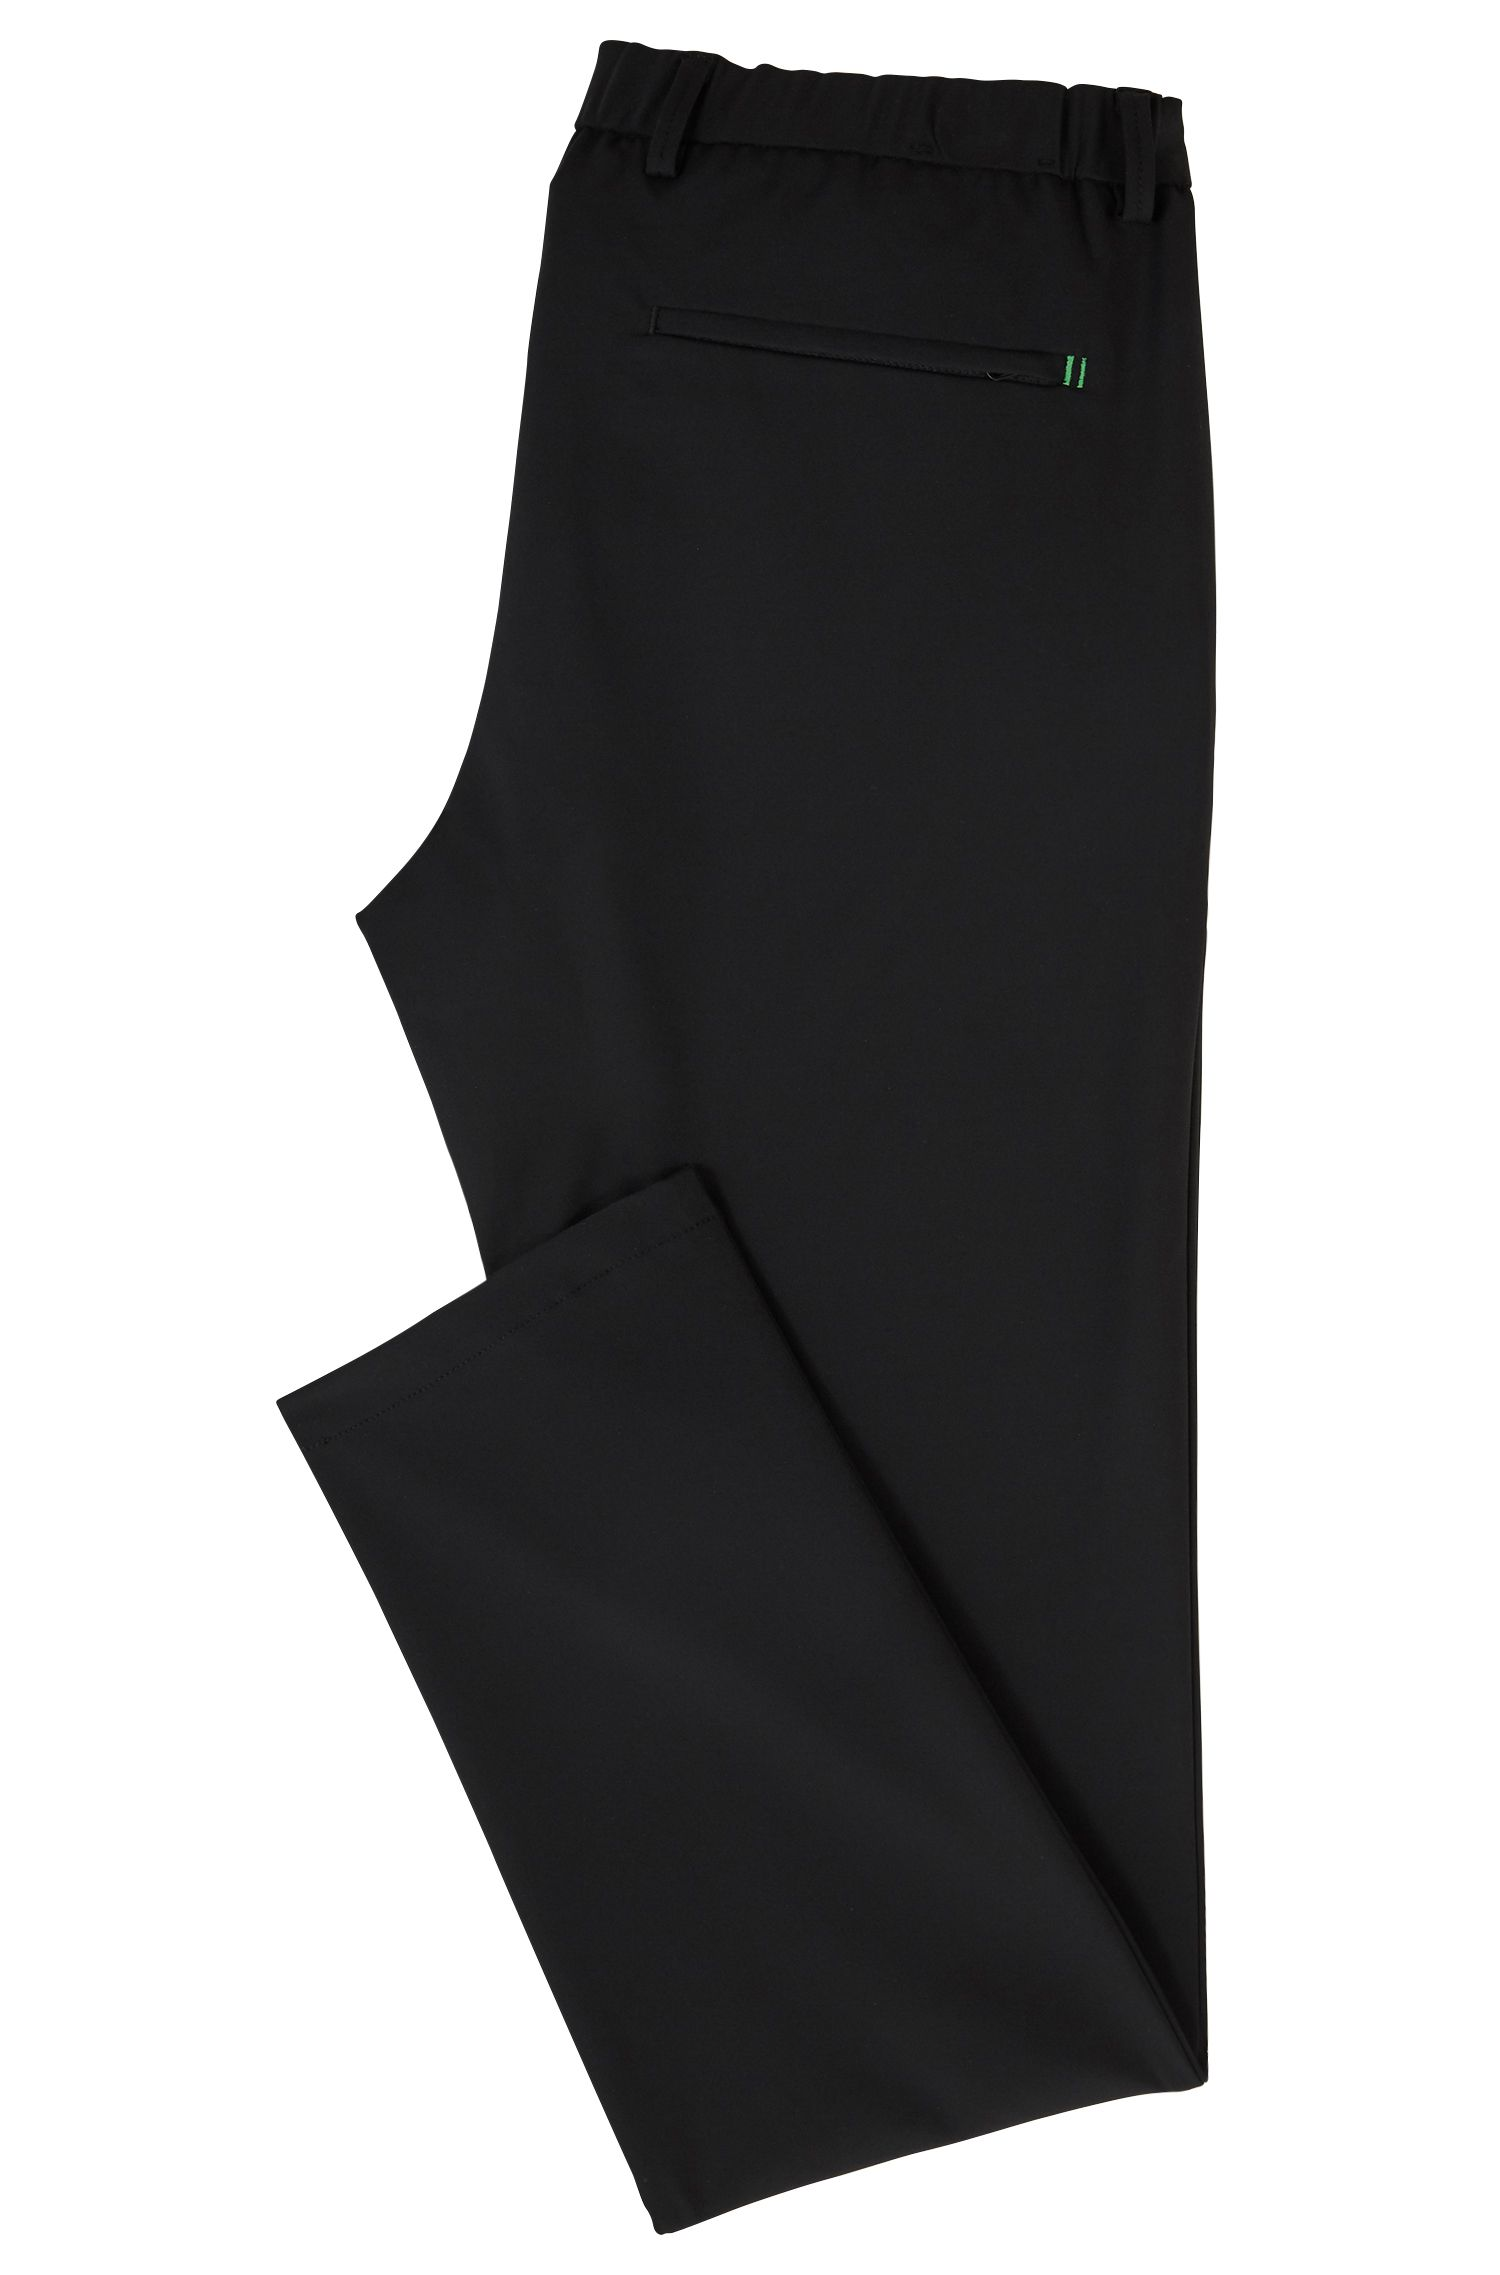 Pantalon Slim Fit hydrofuge, en tissu stretch quadri-extensible